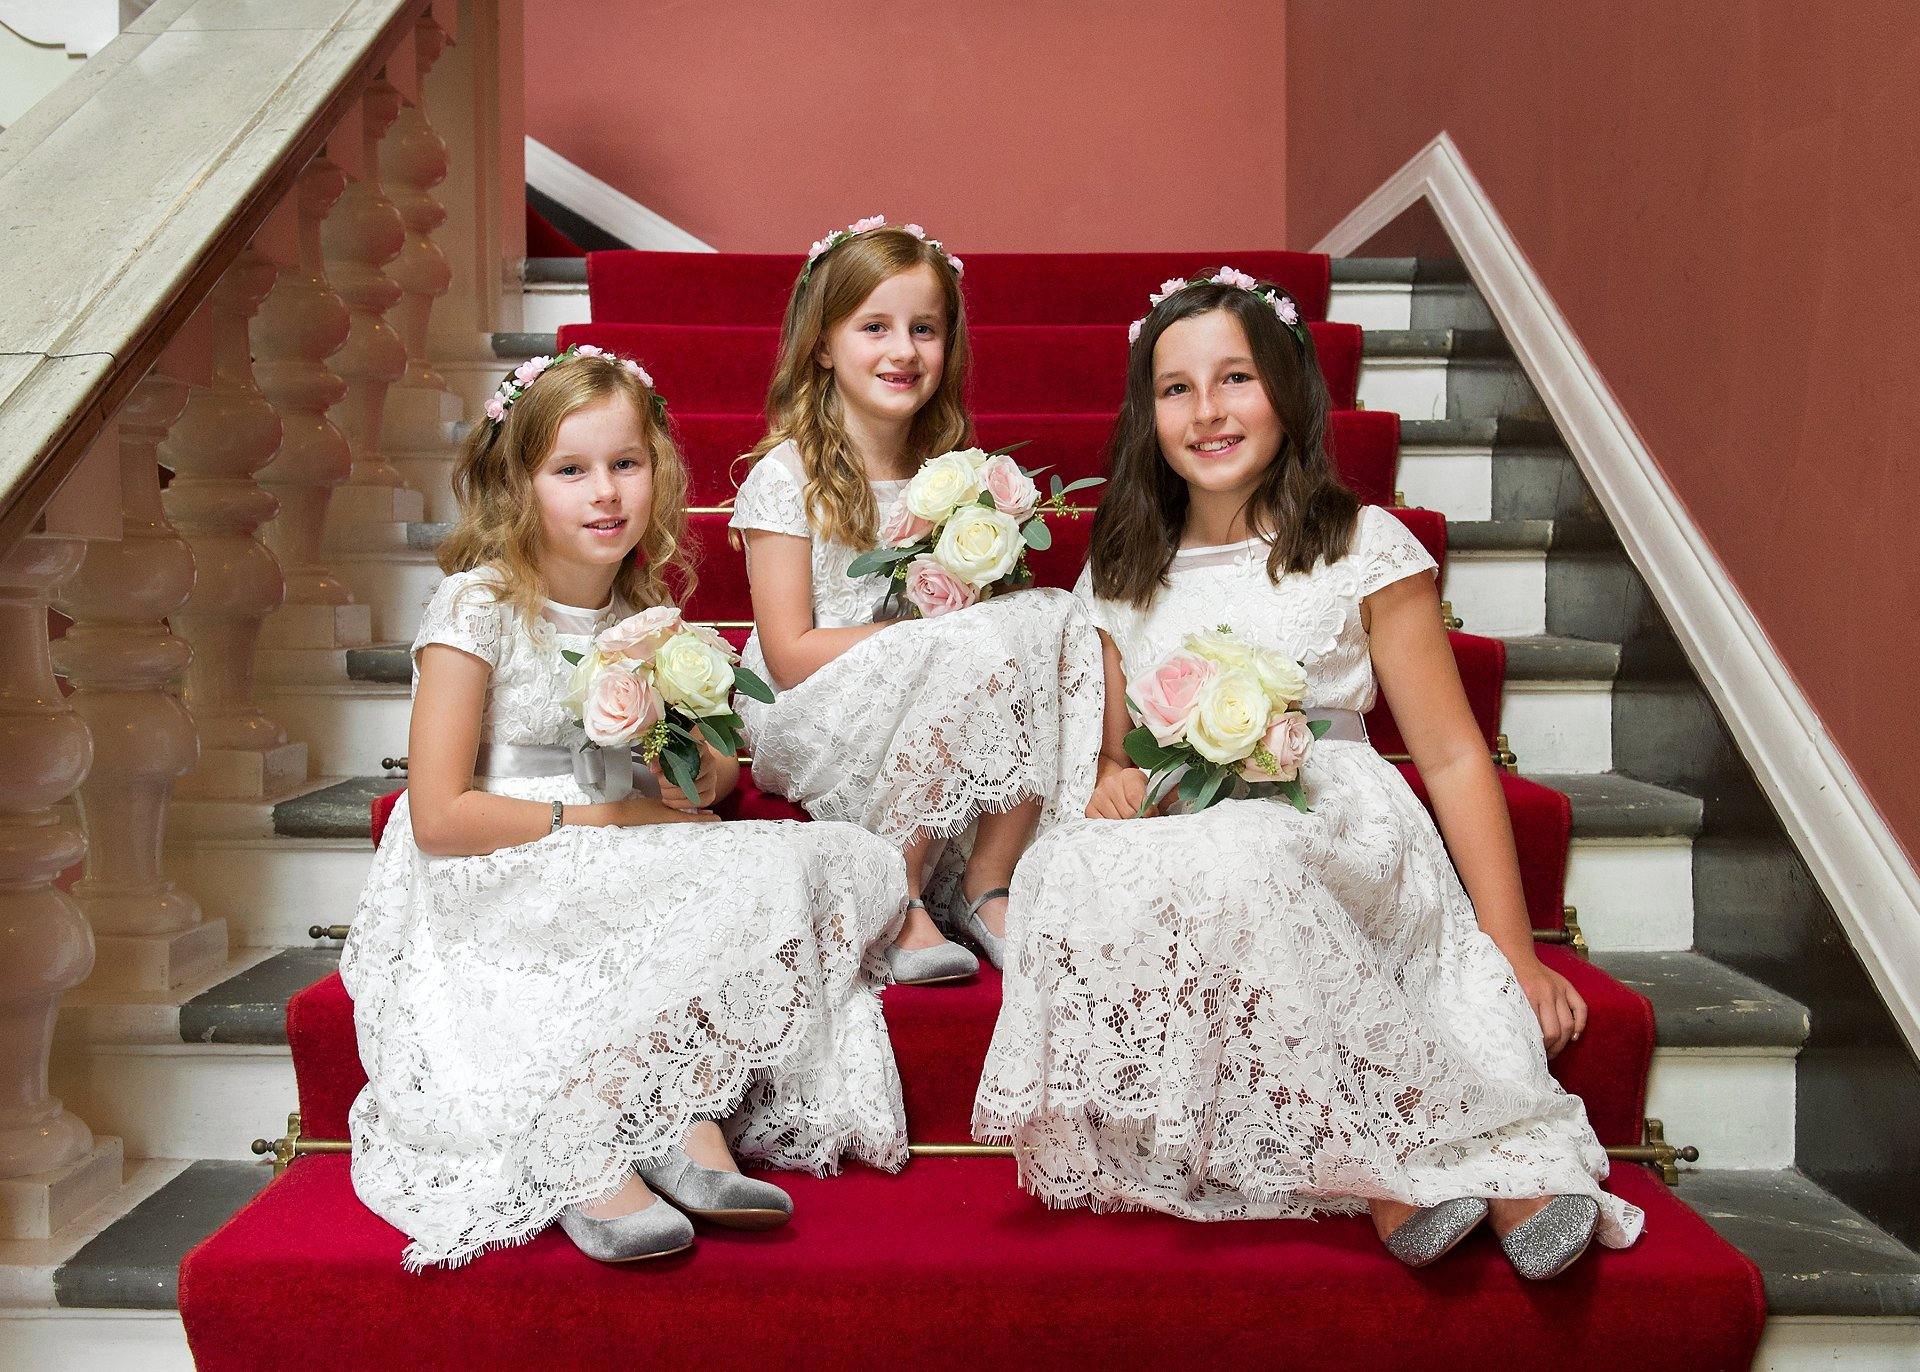 Family Wedding Photography Chelsea Town Hall with three small flower girls sitting on the red staircase in the waiting room at Chelsea Register Office